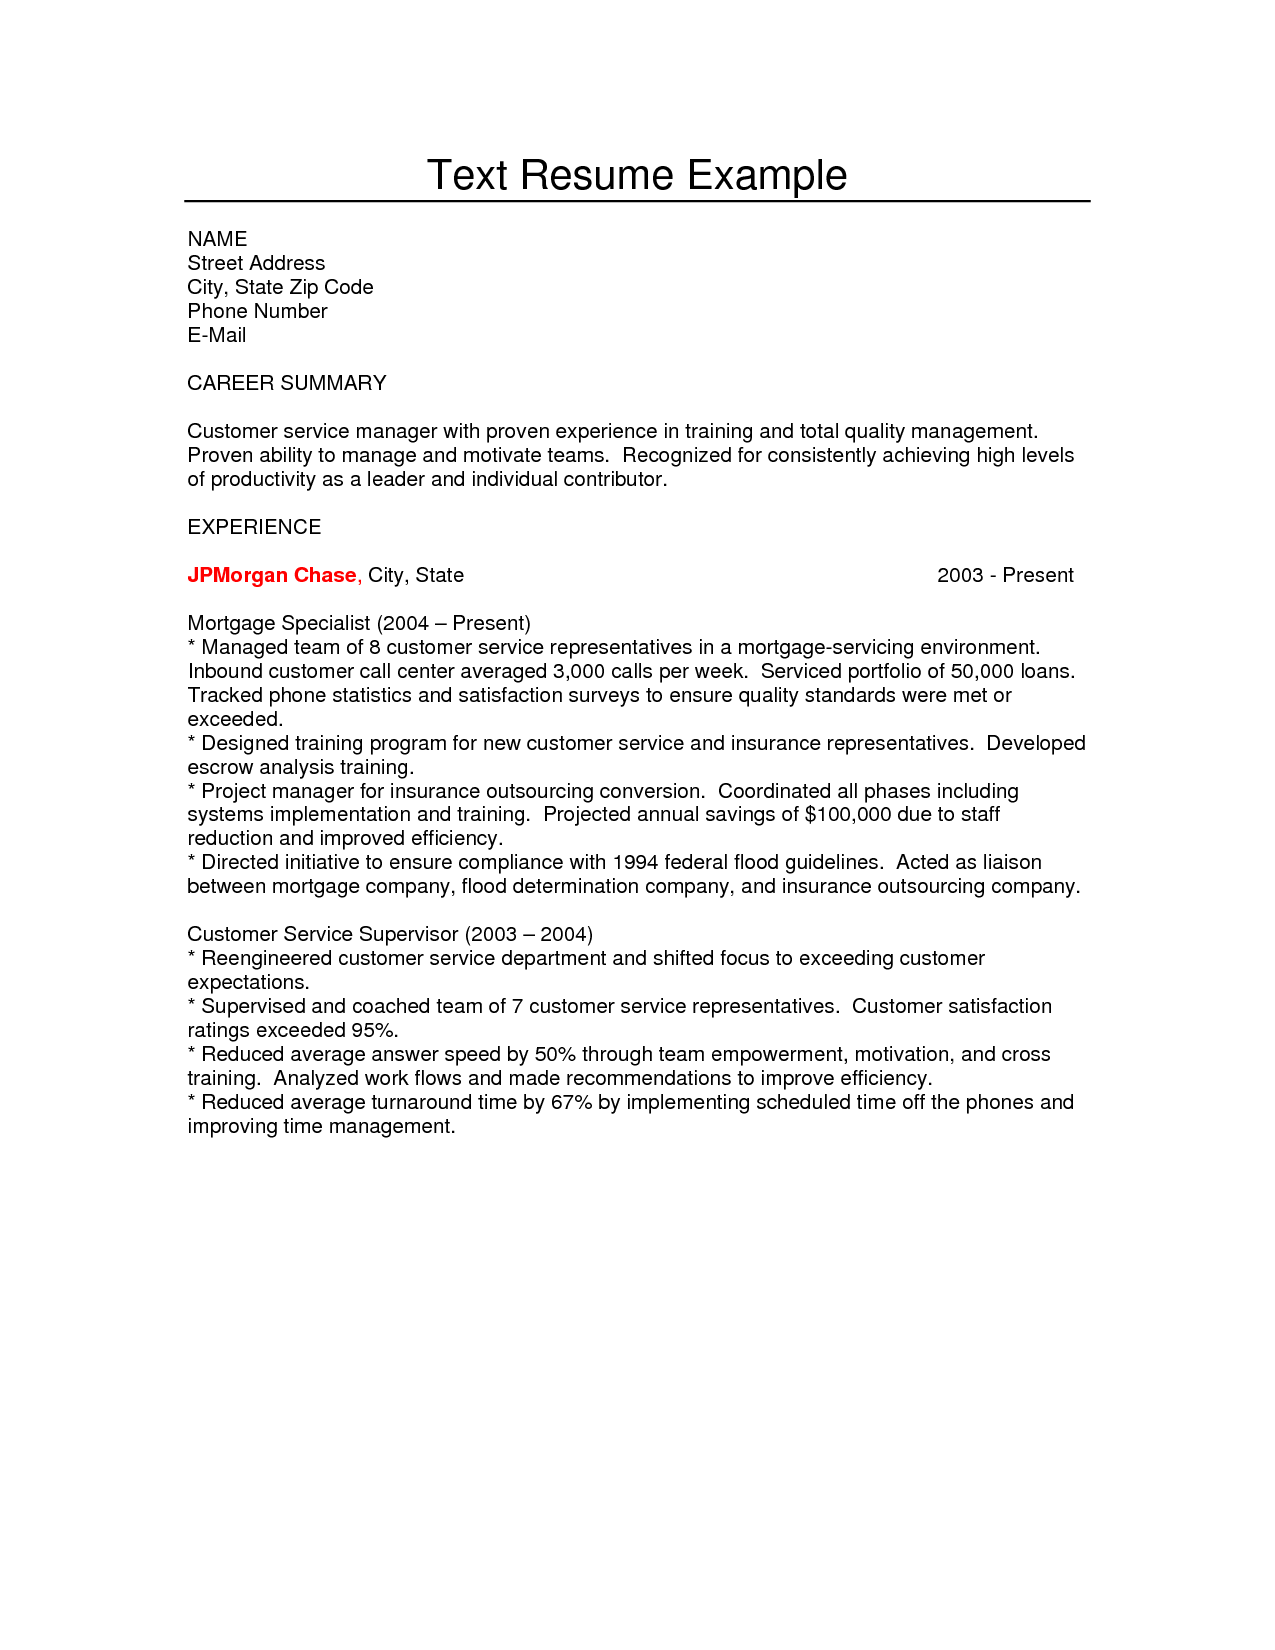 Resume text example